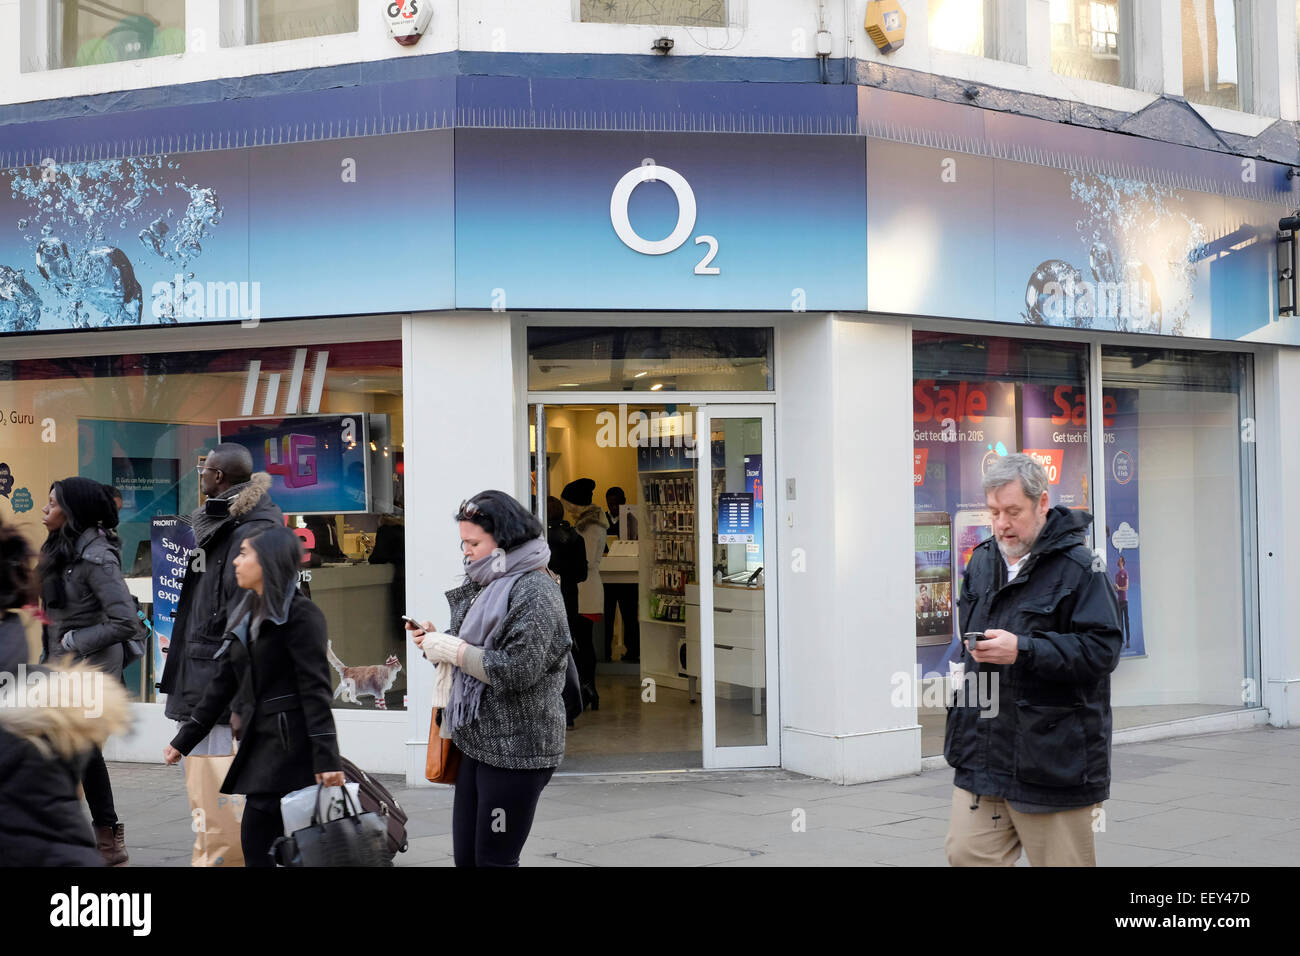 a general view of an o2 store shop on oxford street london stock photo 78042705 alamy. Black Bedroom Furniture Sets. Home Design Ideas